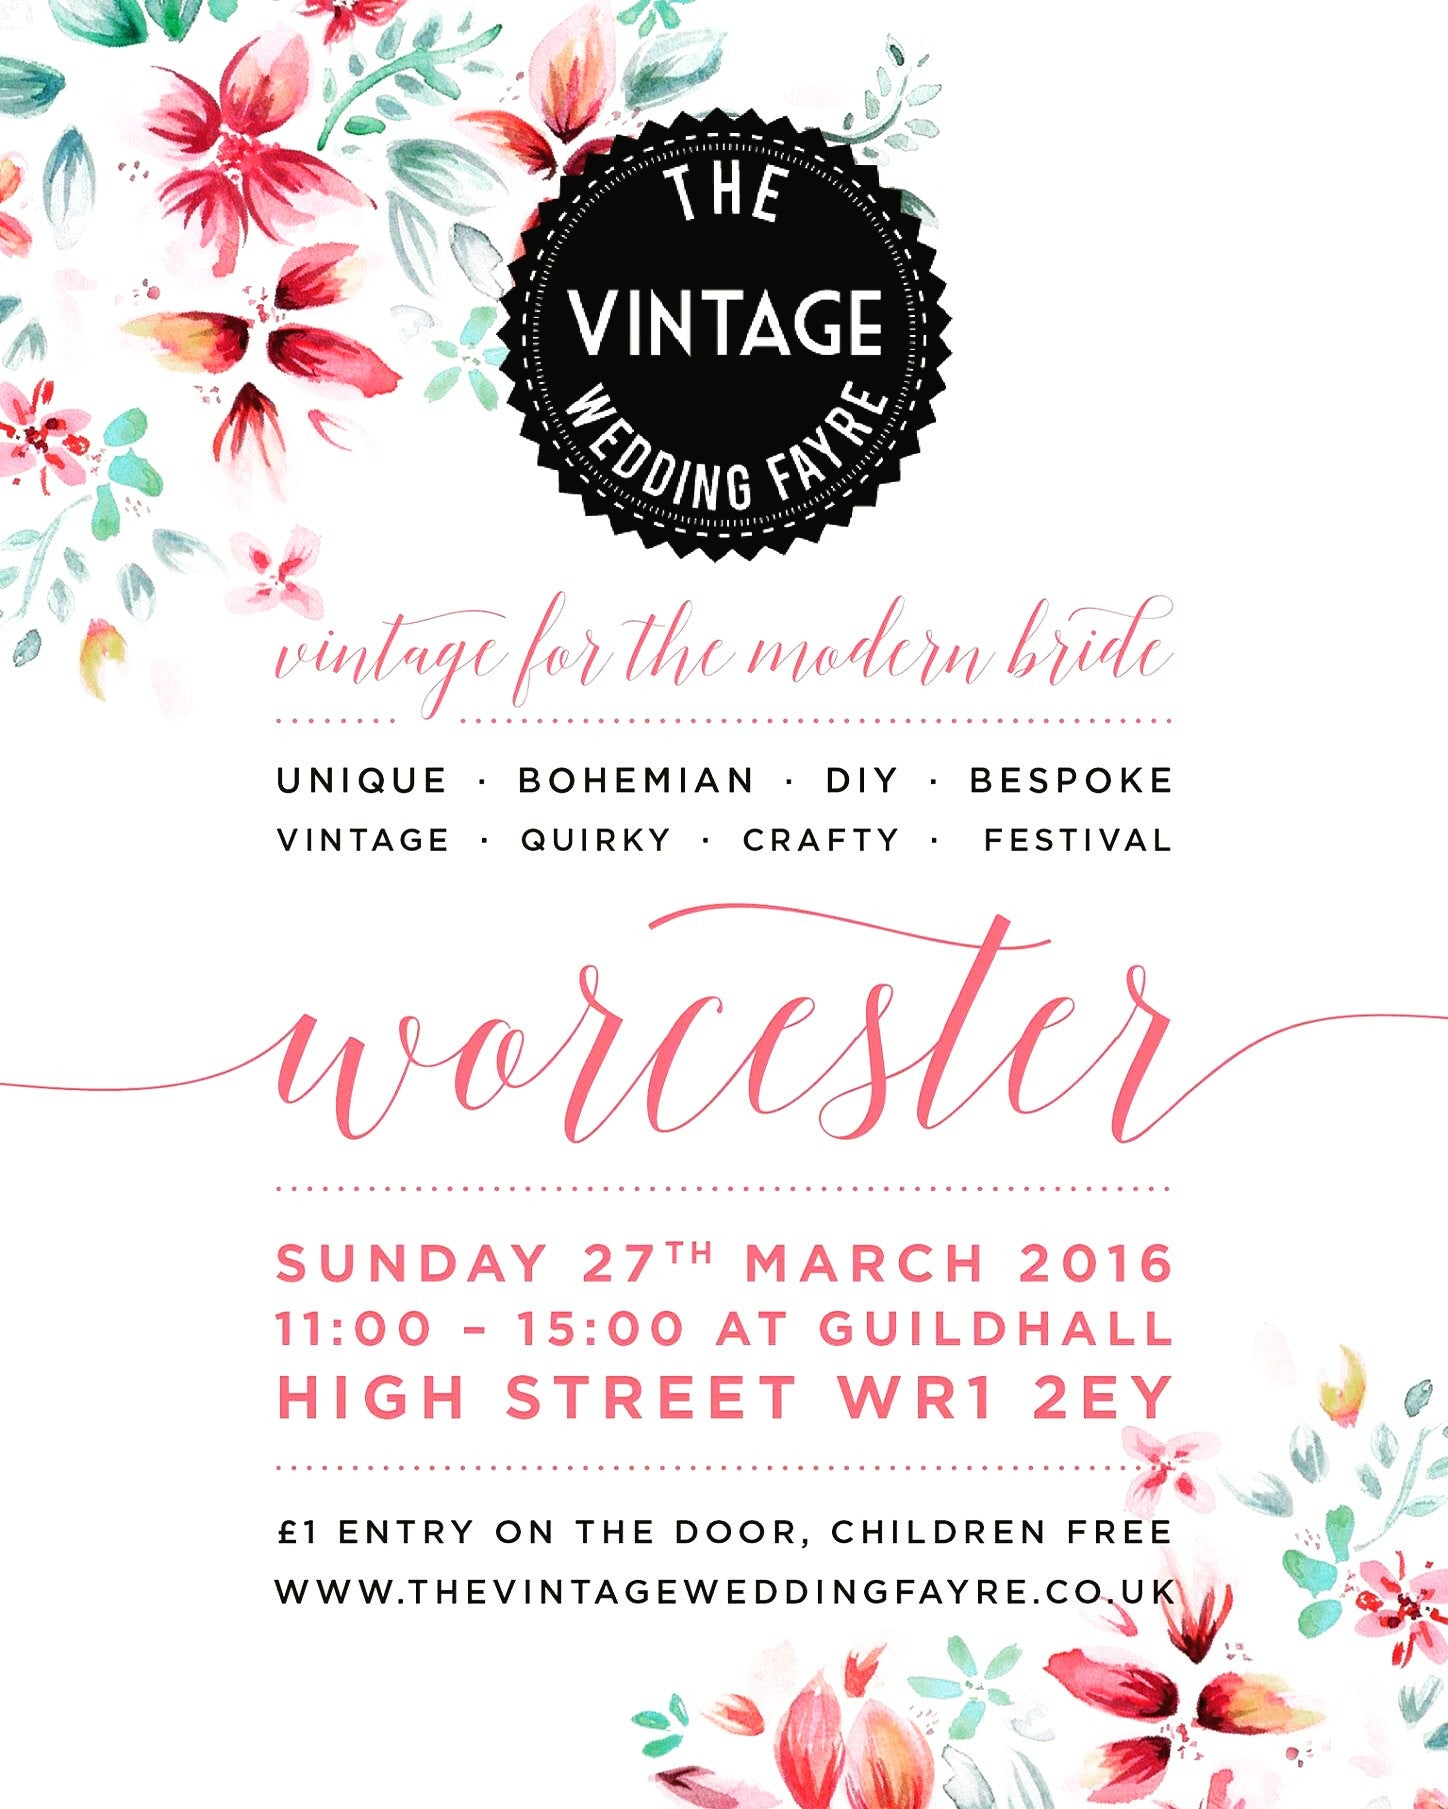 The Vintage Wedding Fayre, Worcester